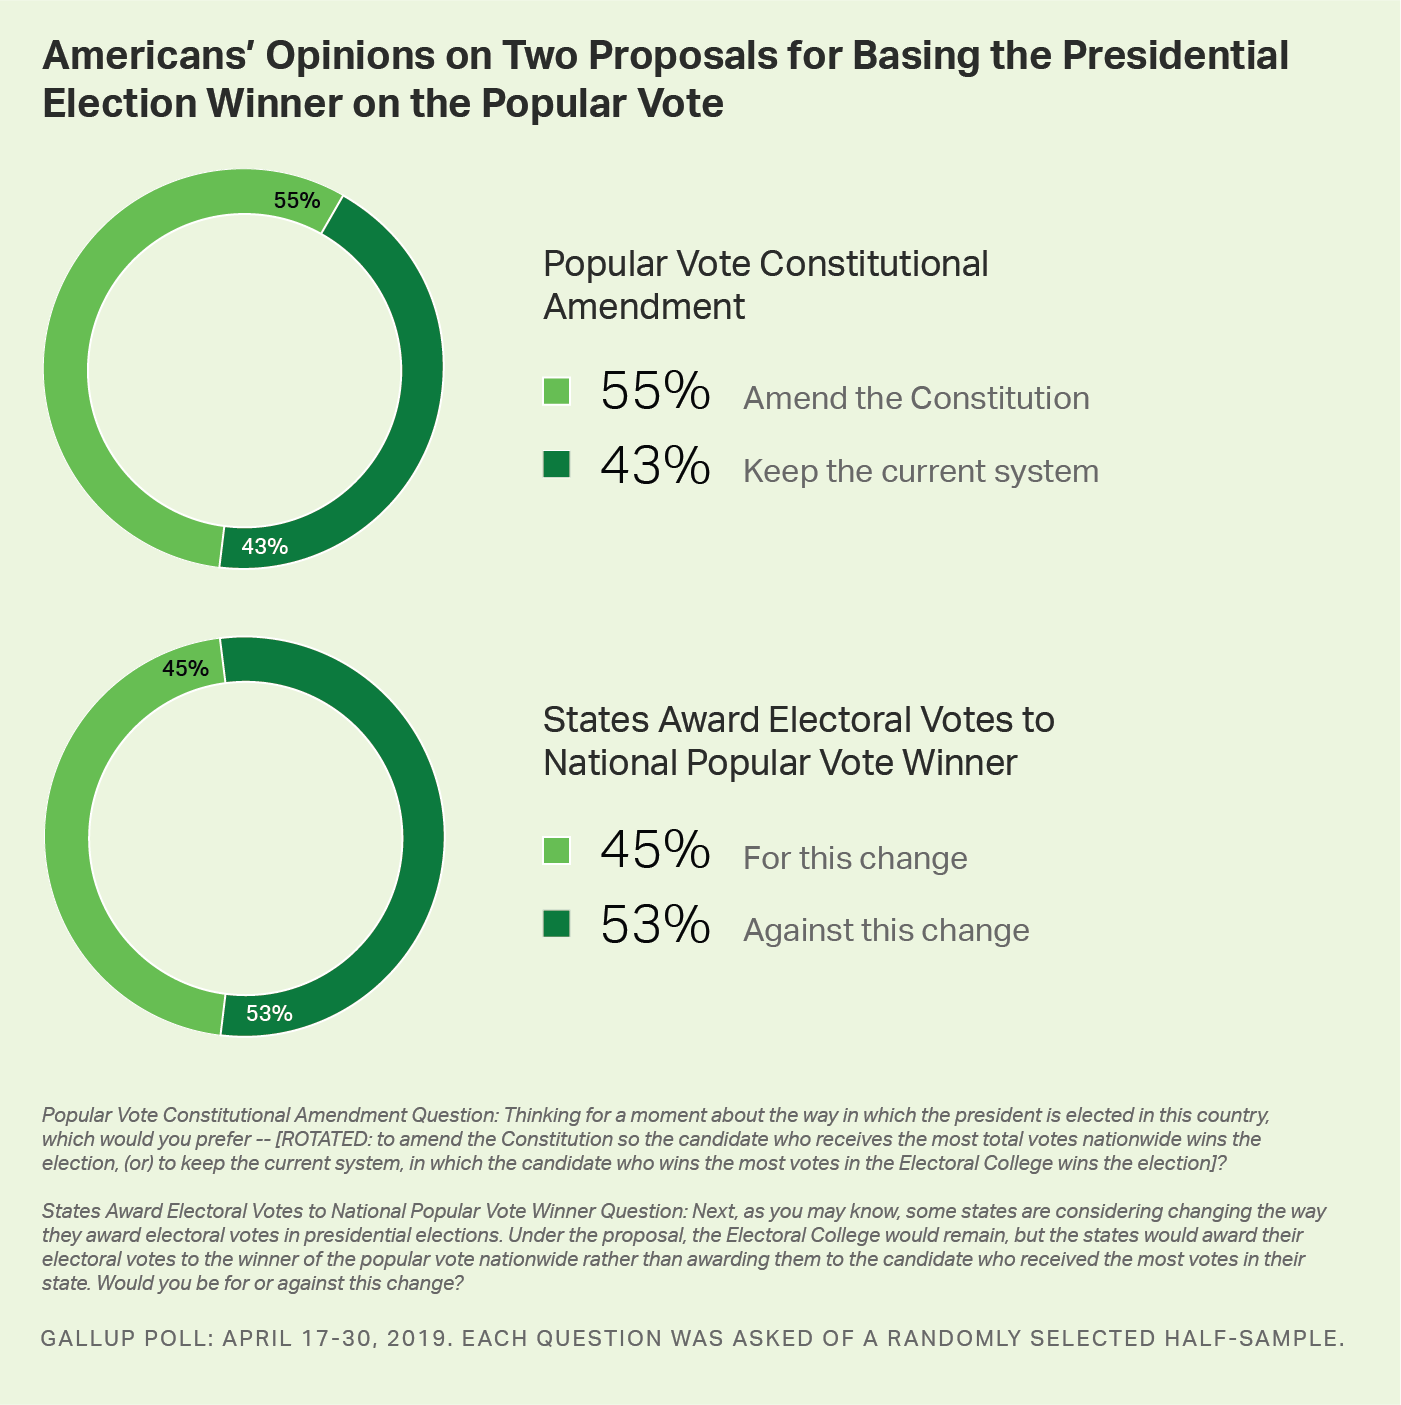 Custom graph. Americans' Opinions on Two Proposals for Basing the Presidential Vote Winner on the Popular Vote.